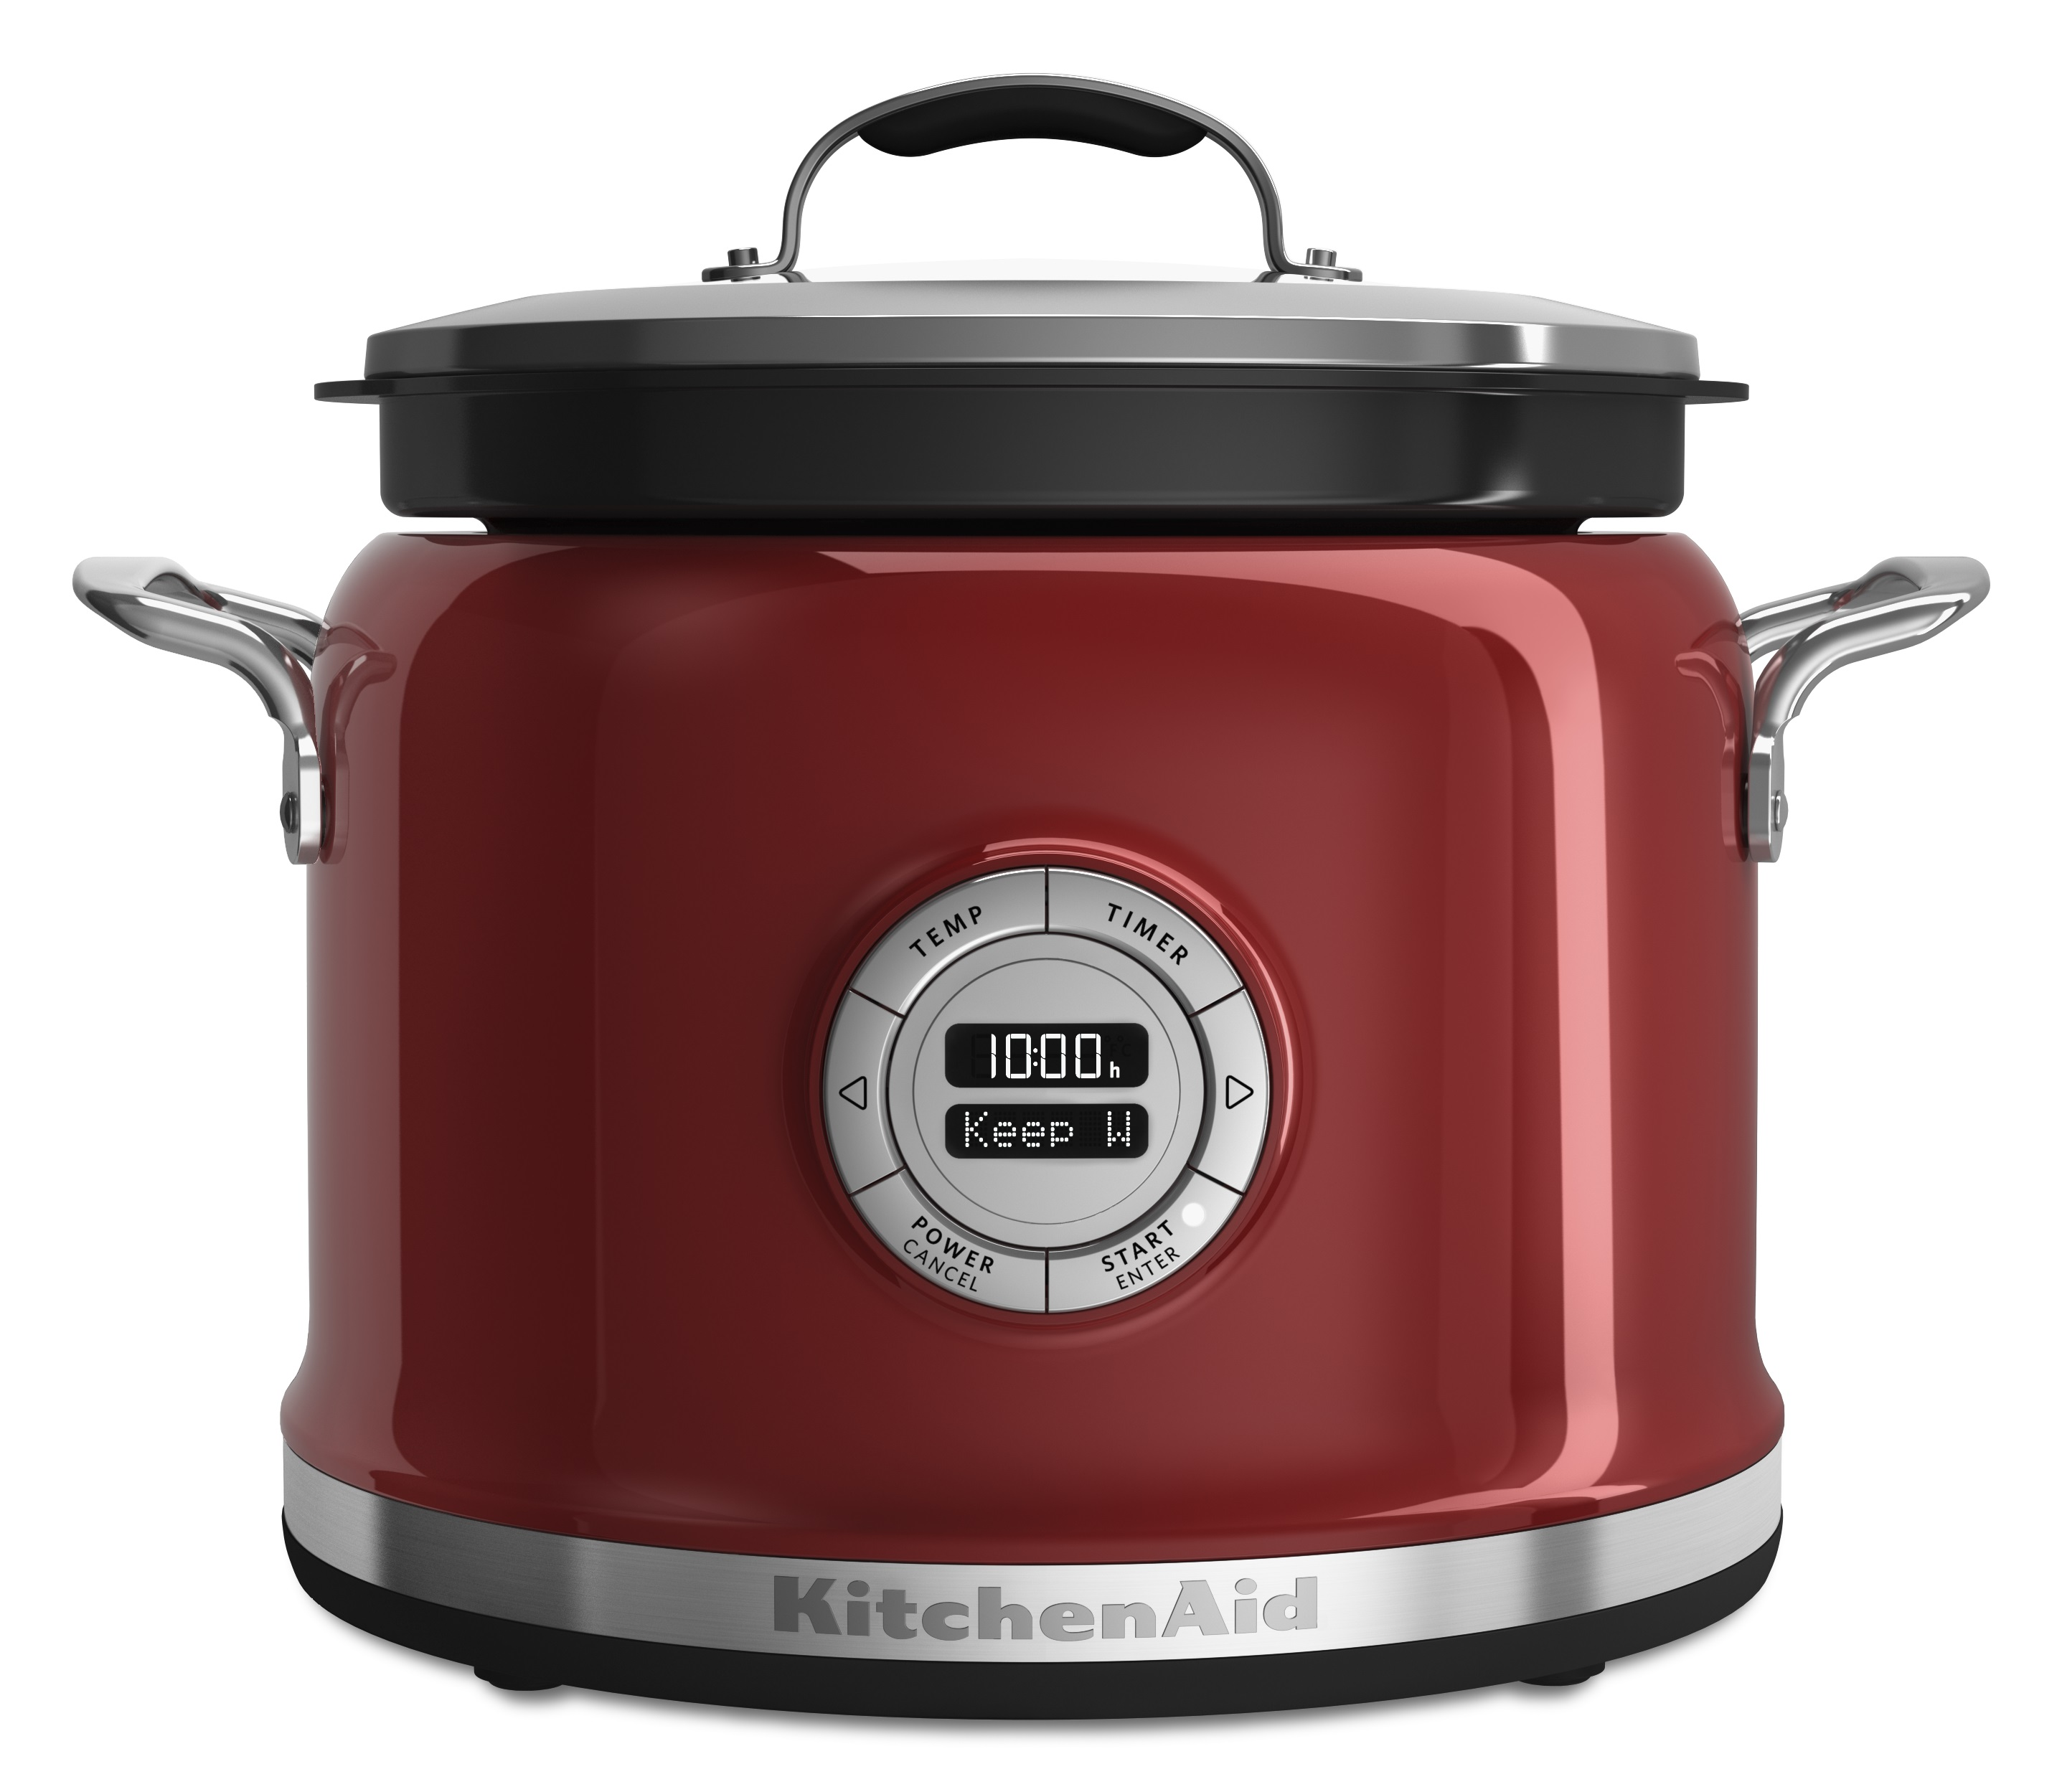 KitchenAid Multi Cooker Offers Cooks Extra Help